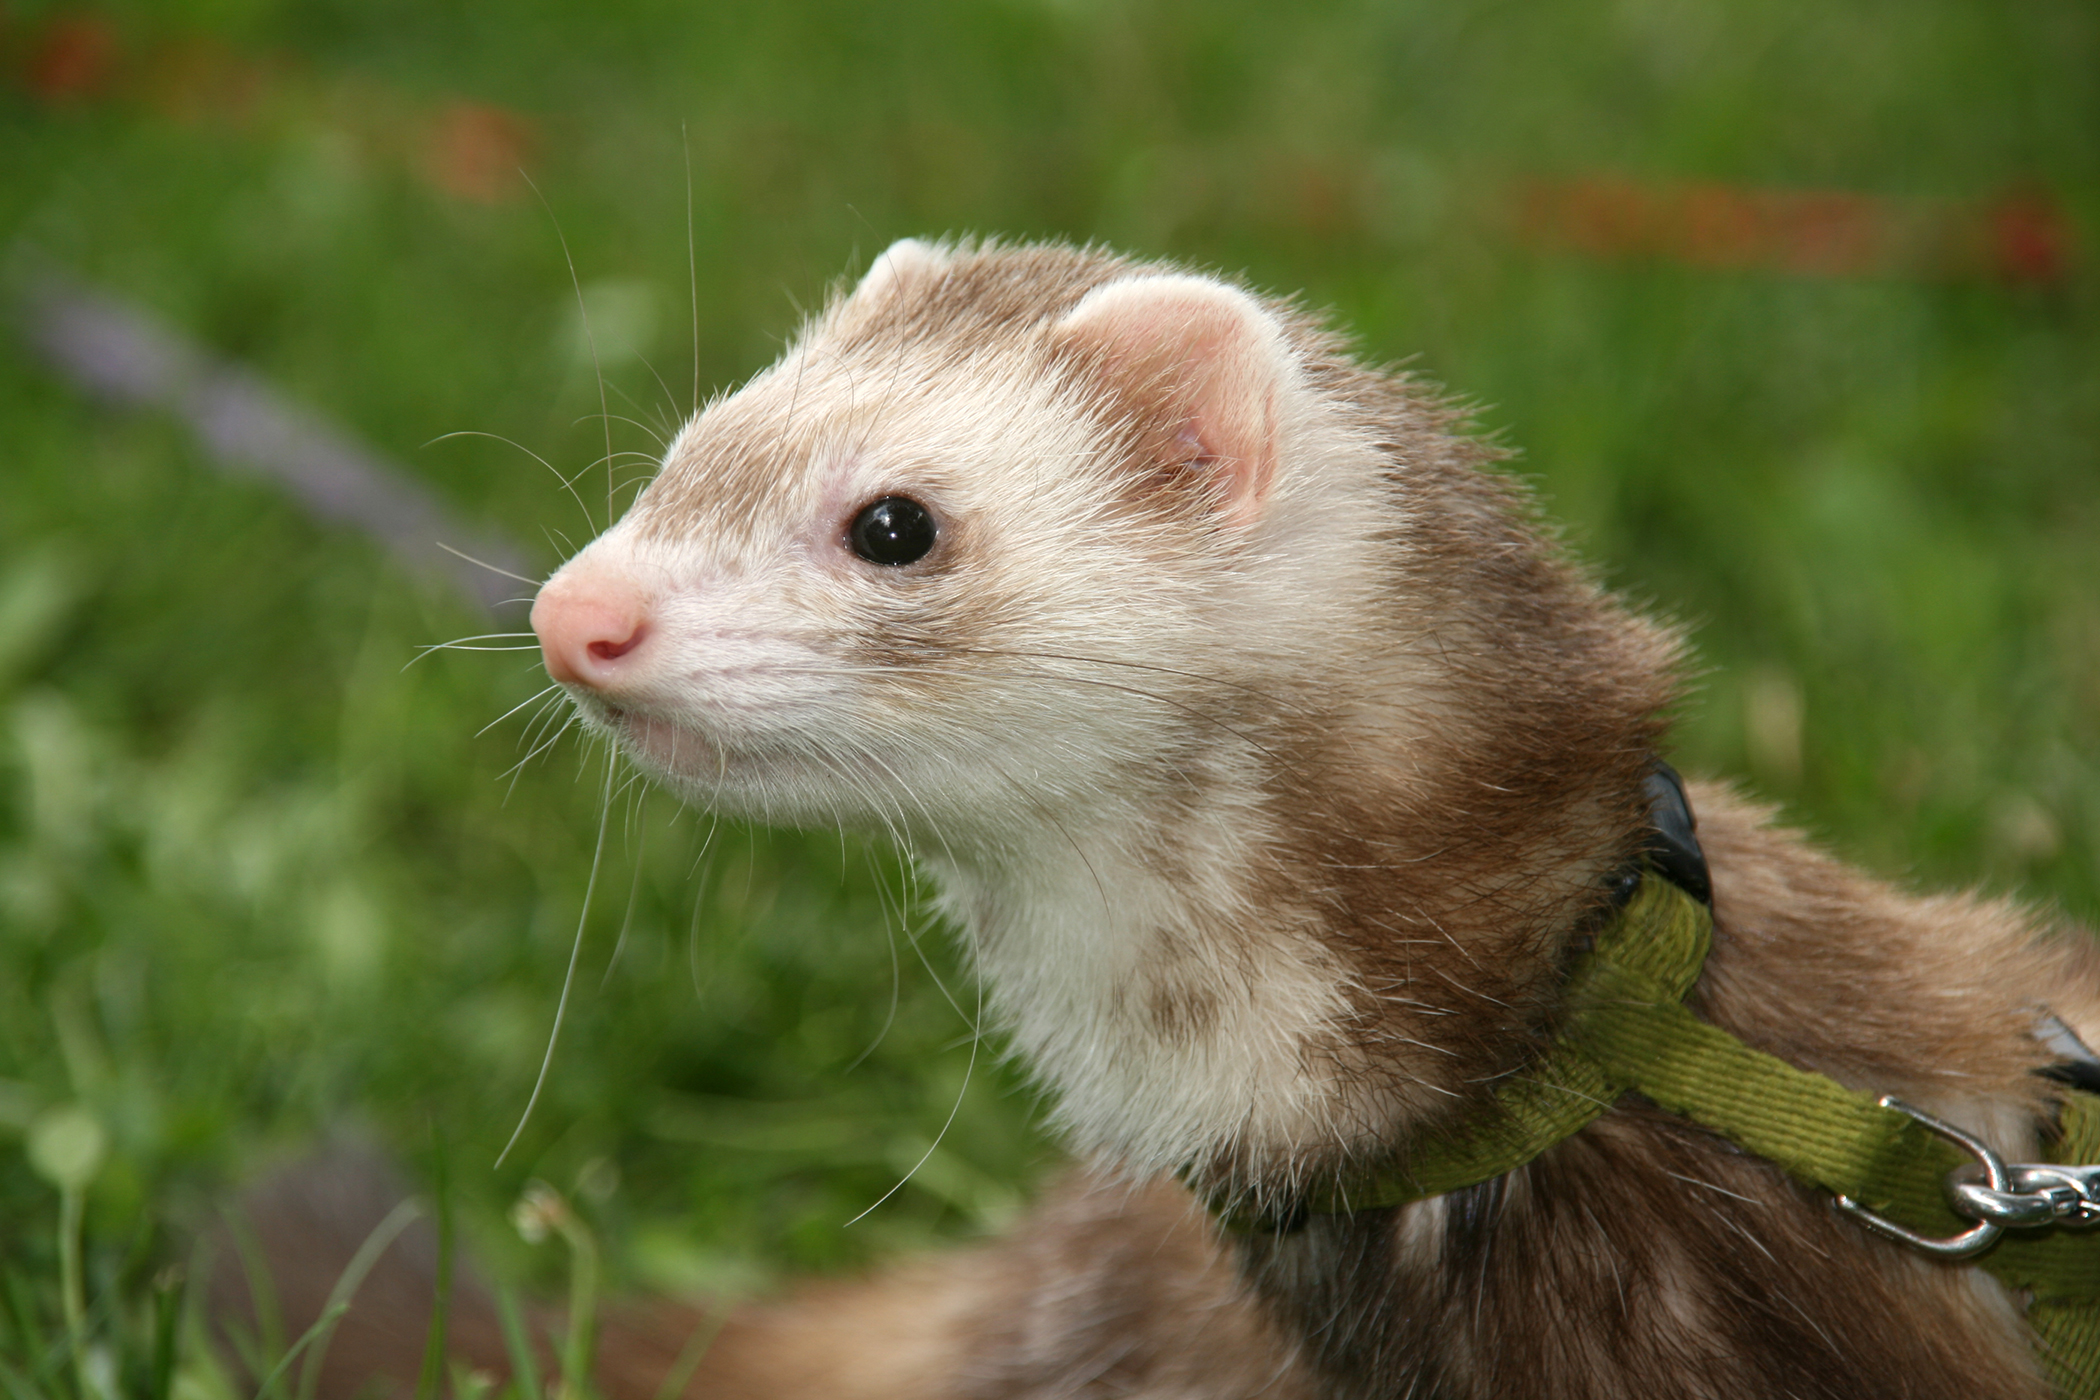 Urinary Tract Obstruction in Ferrets